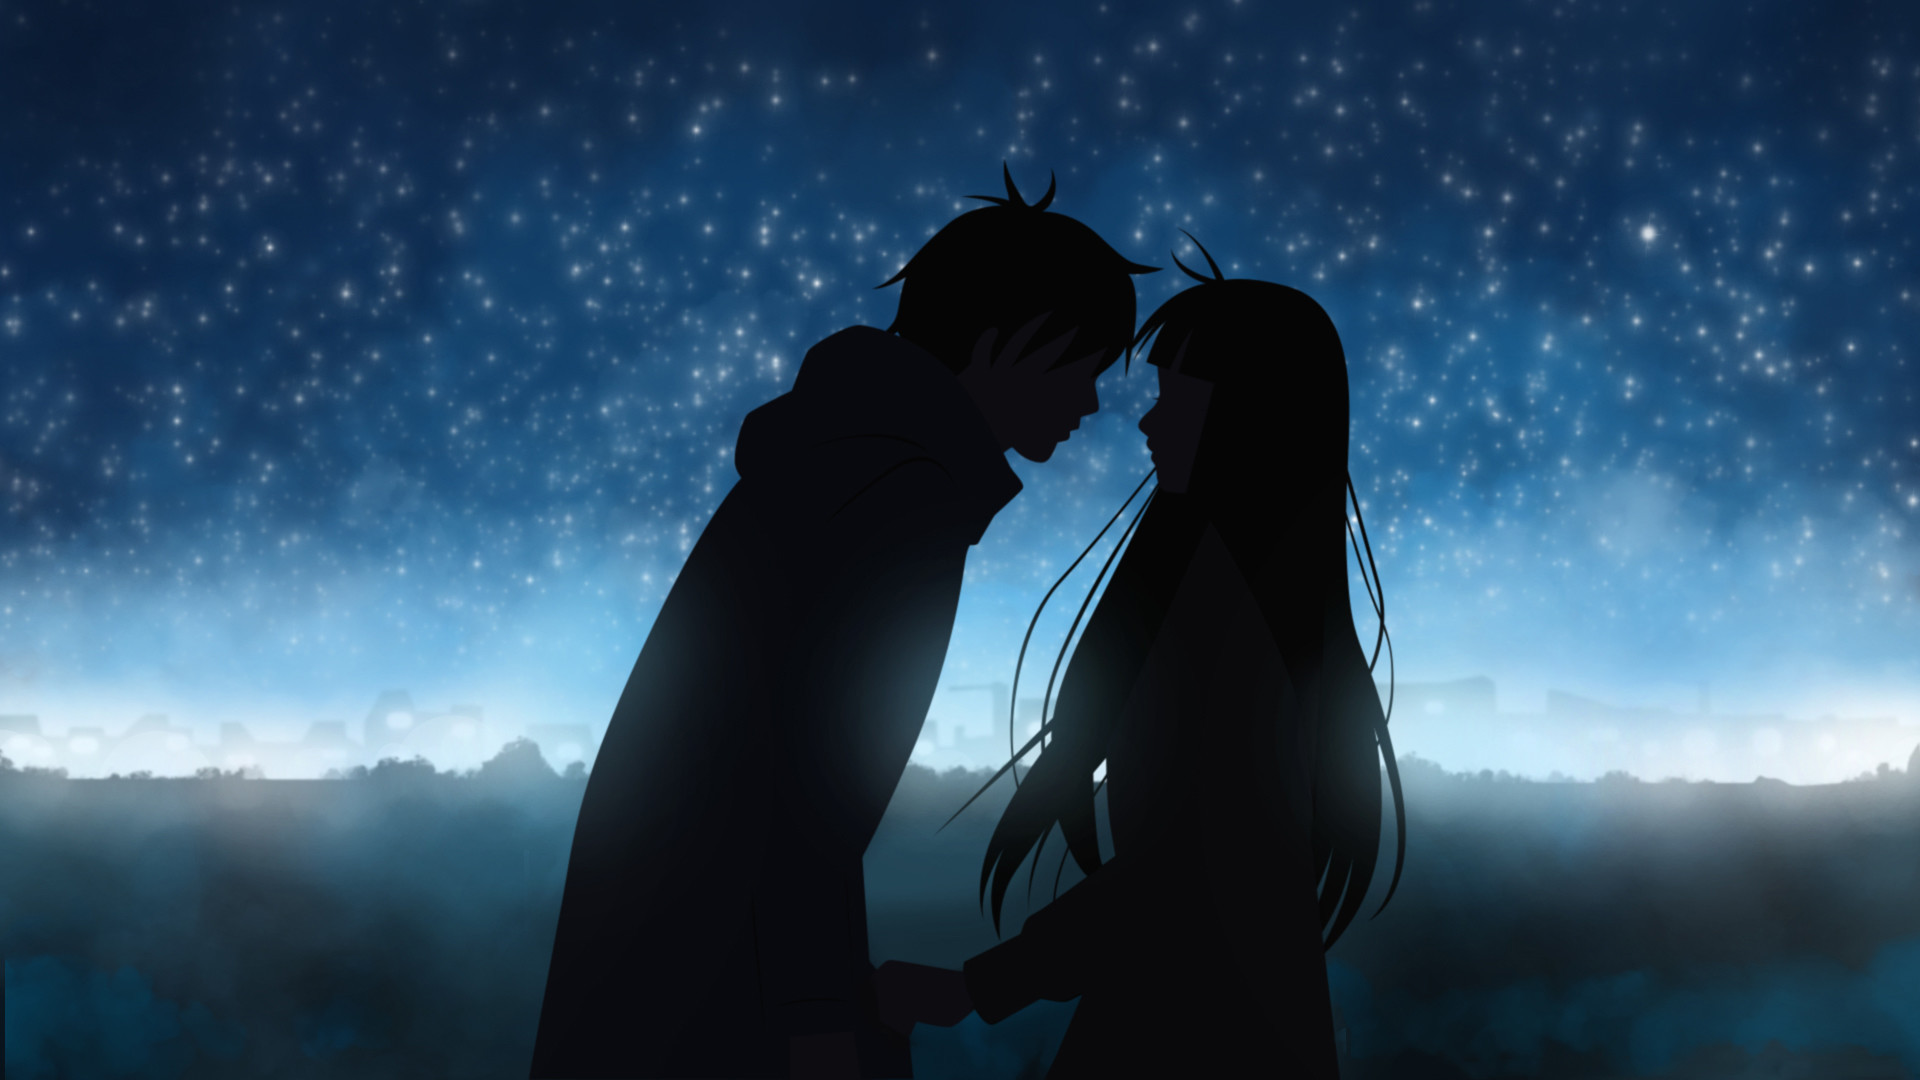 Res: 1920x1080, 1920×1080 romantic anime wallpaper hd desktop wallpapers cool images hd  download apple background wallpapers